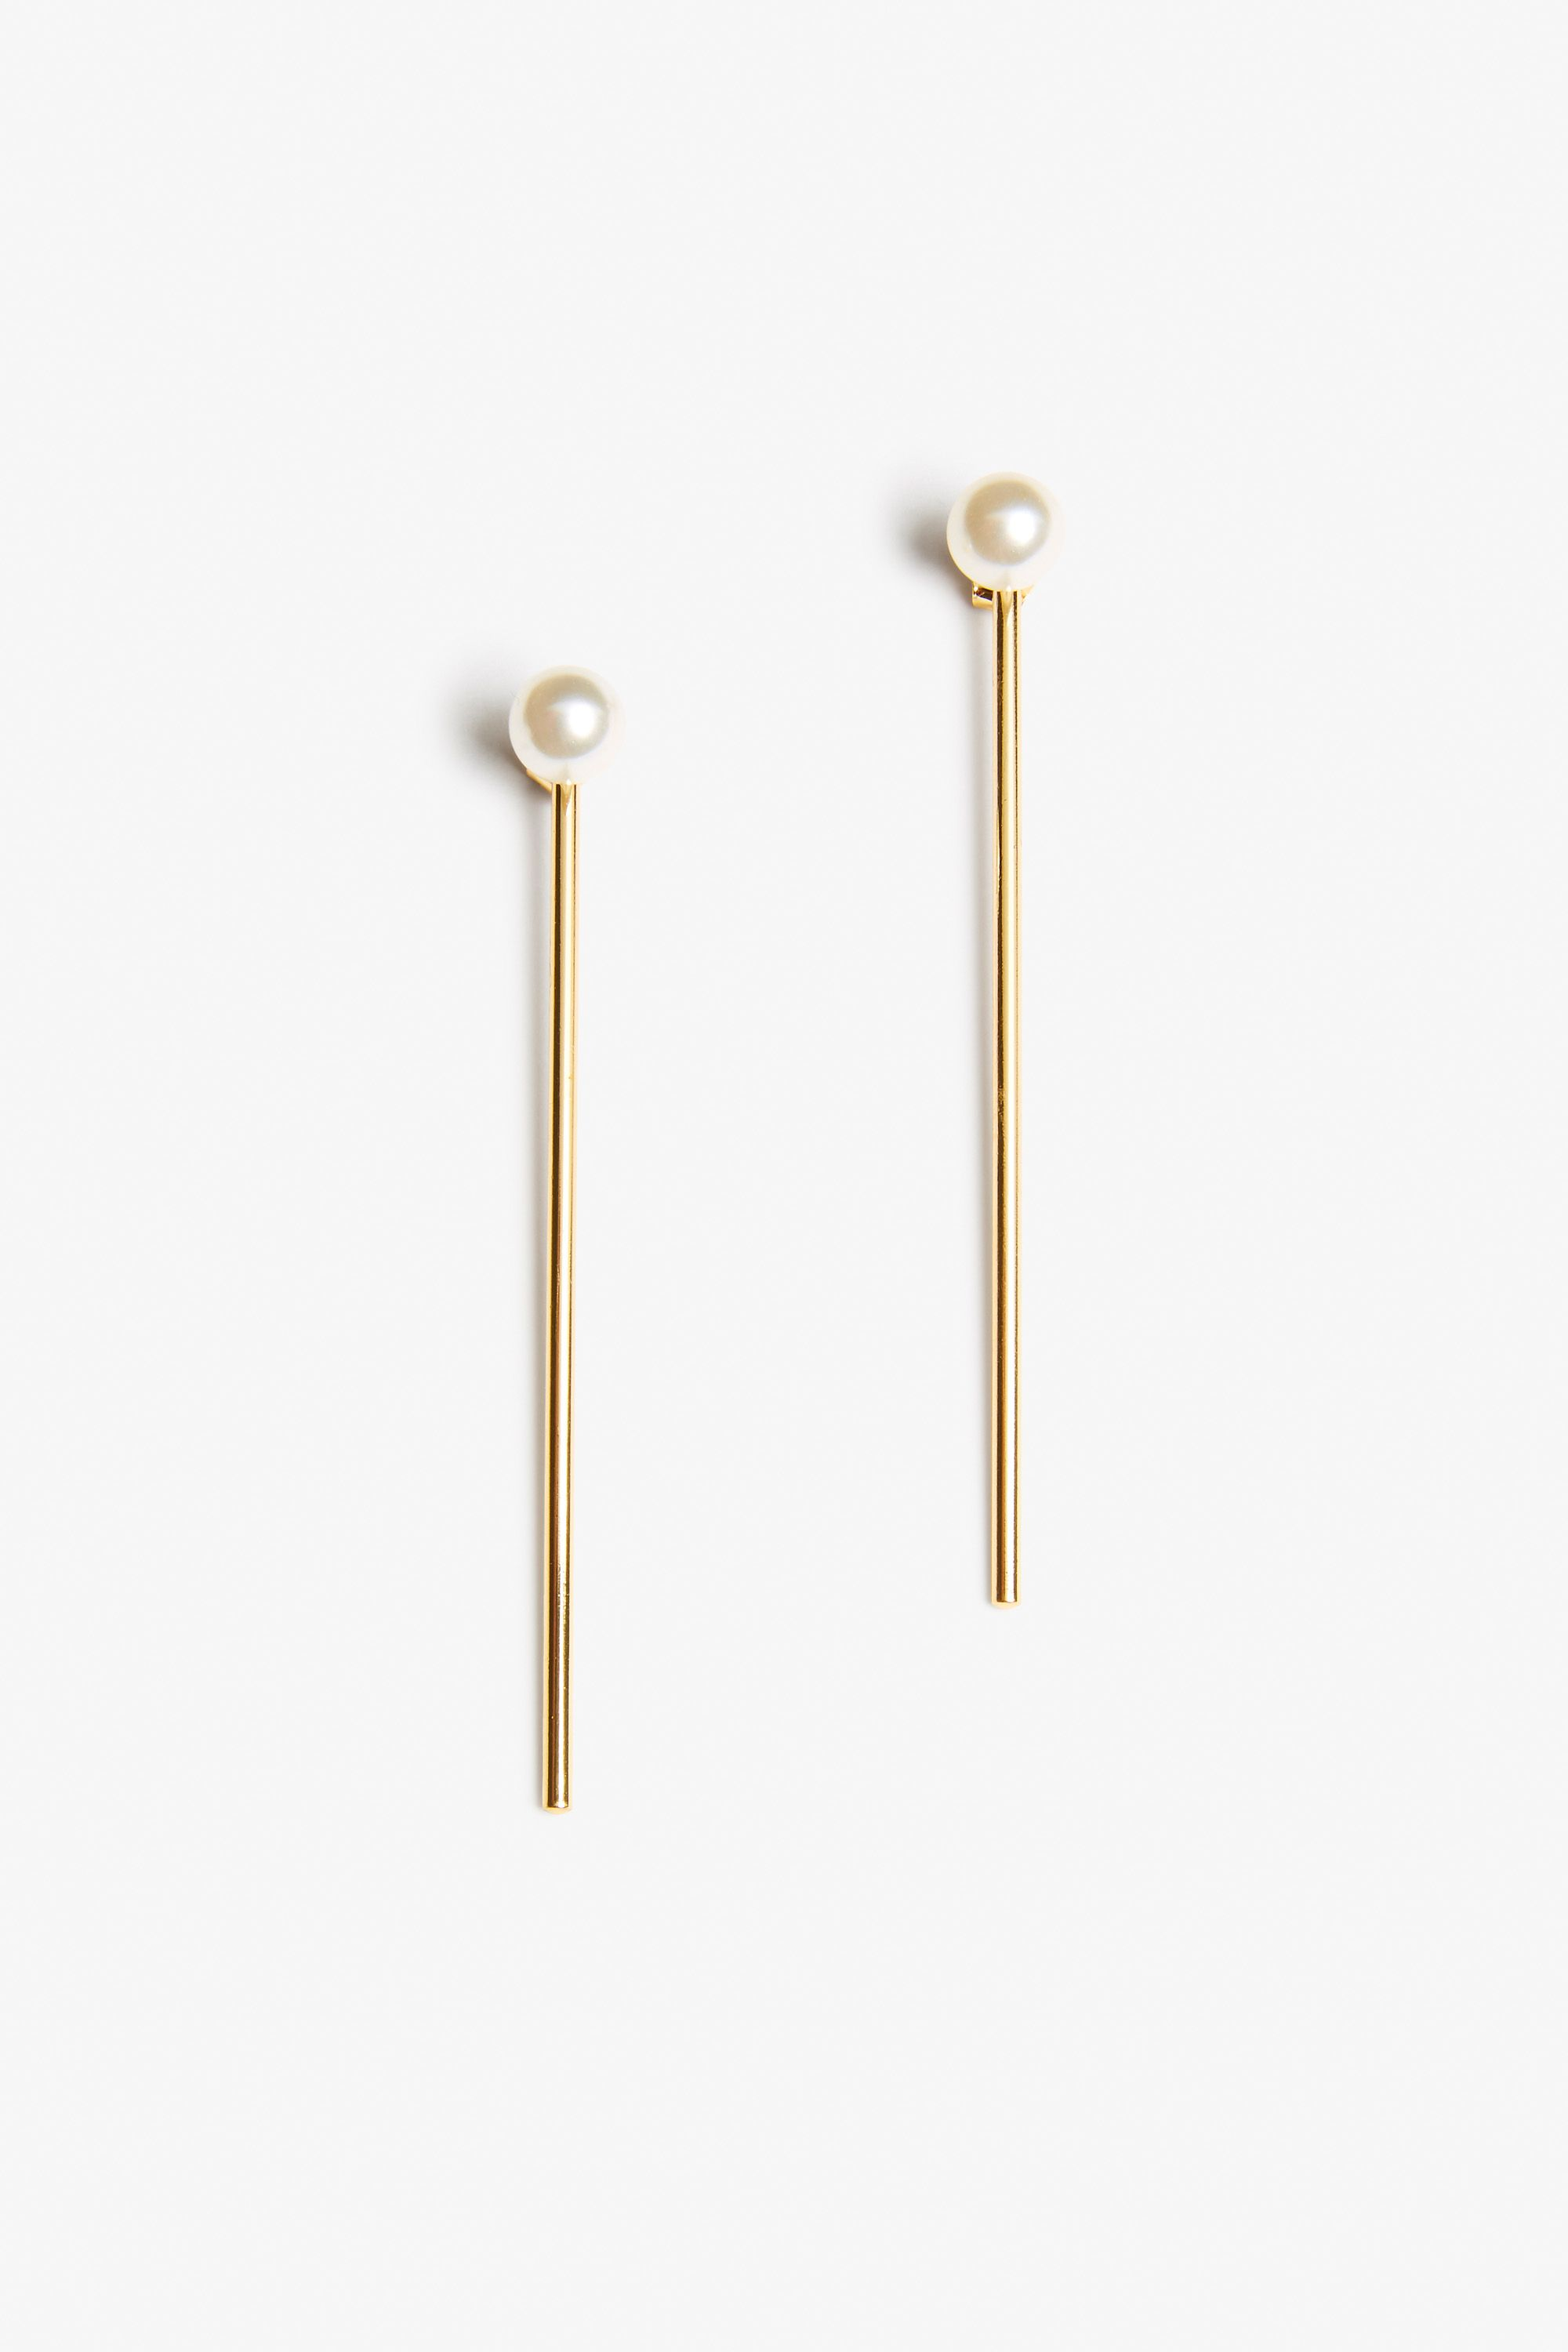 A stately pair of earrings for an insta-elegant flourish to any outfit. The golden bar is detachable in case you feel like just flaunting pearls | Architect's Fashion